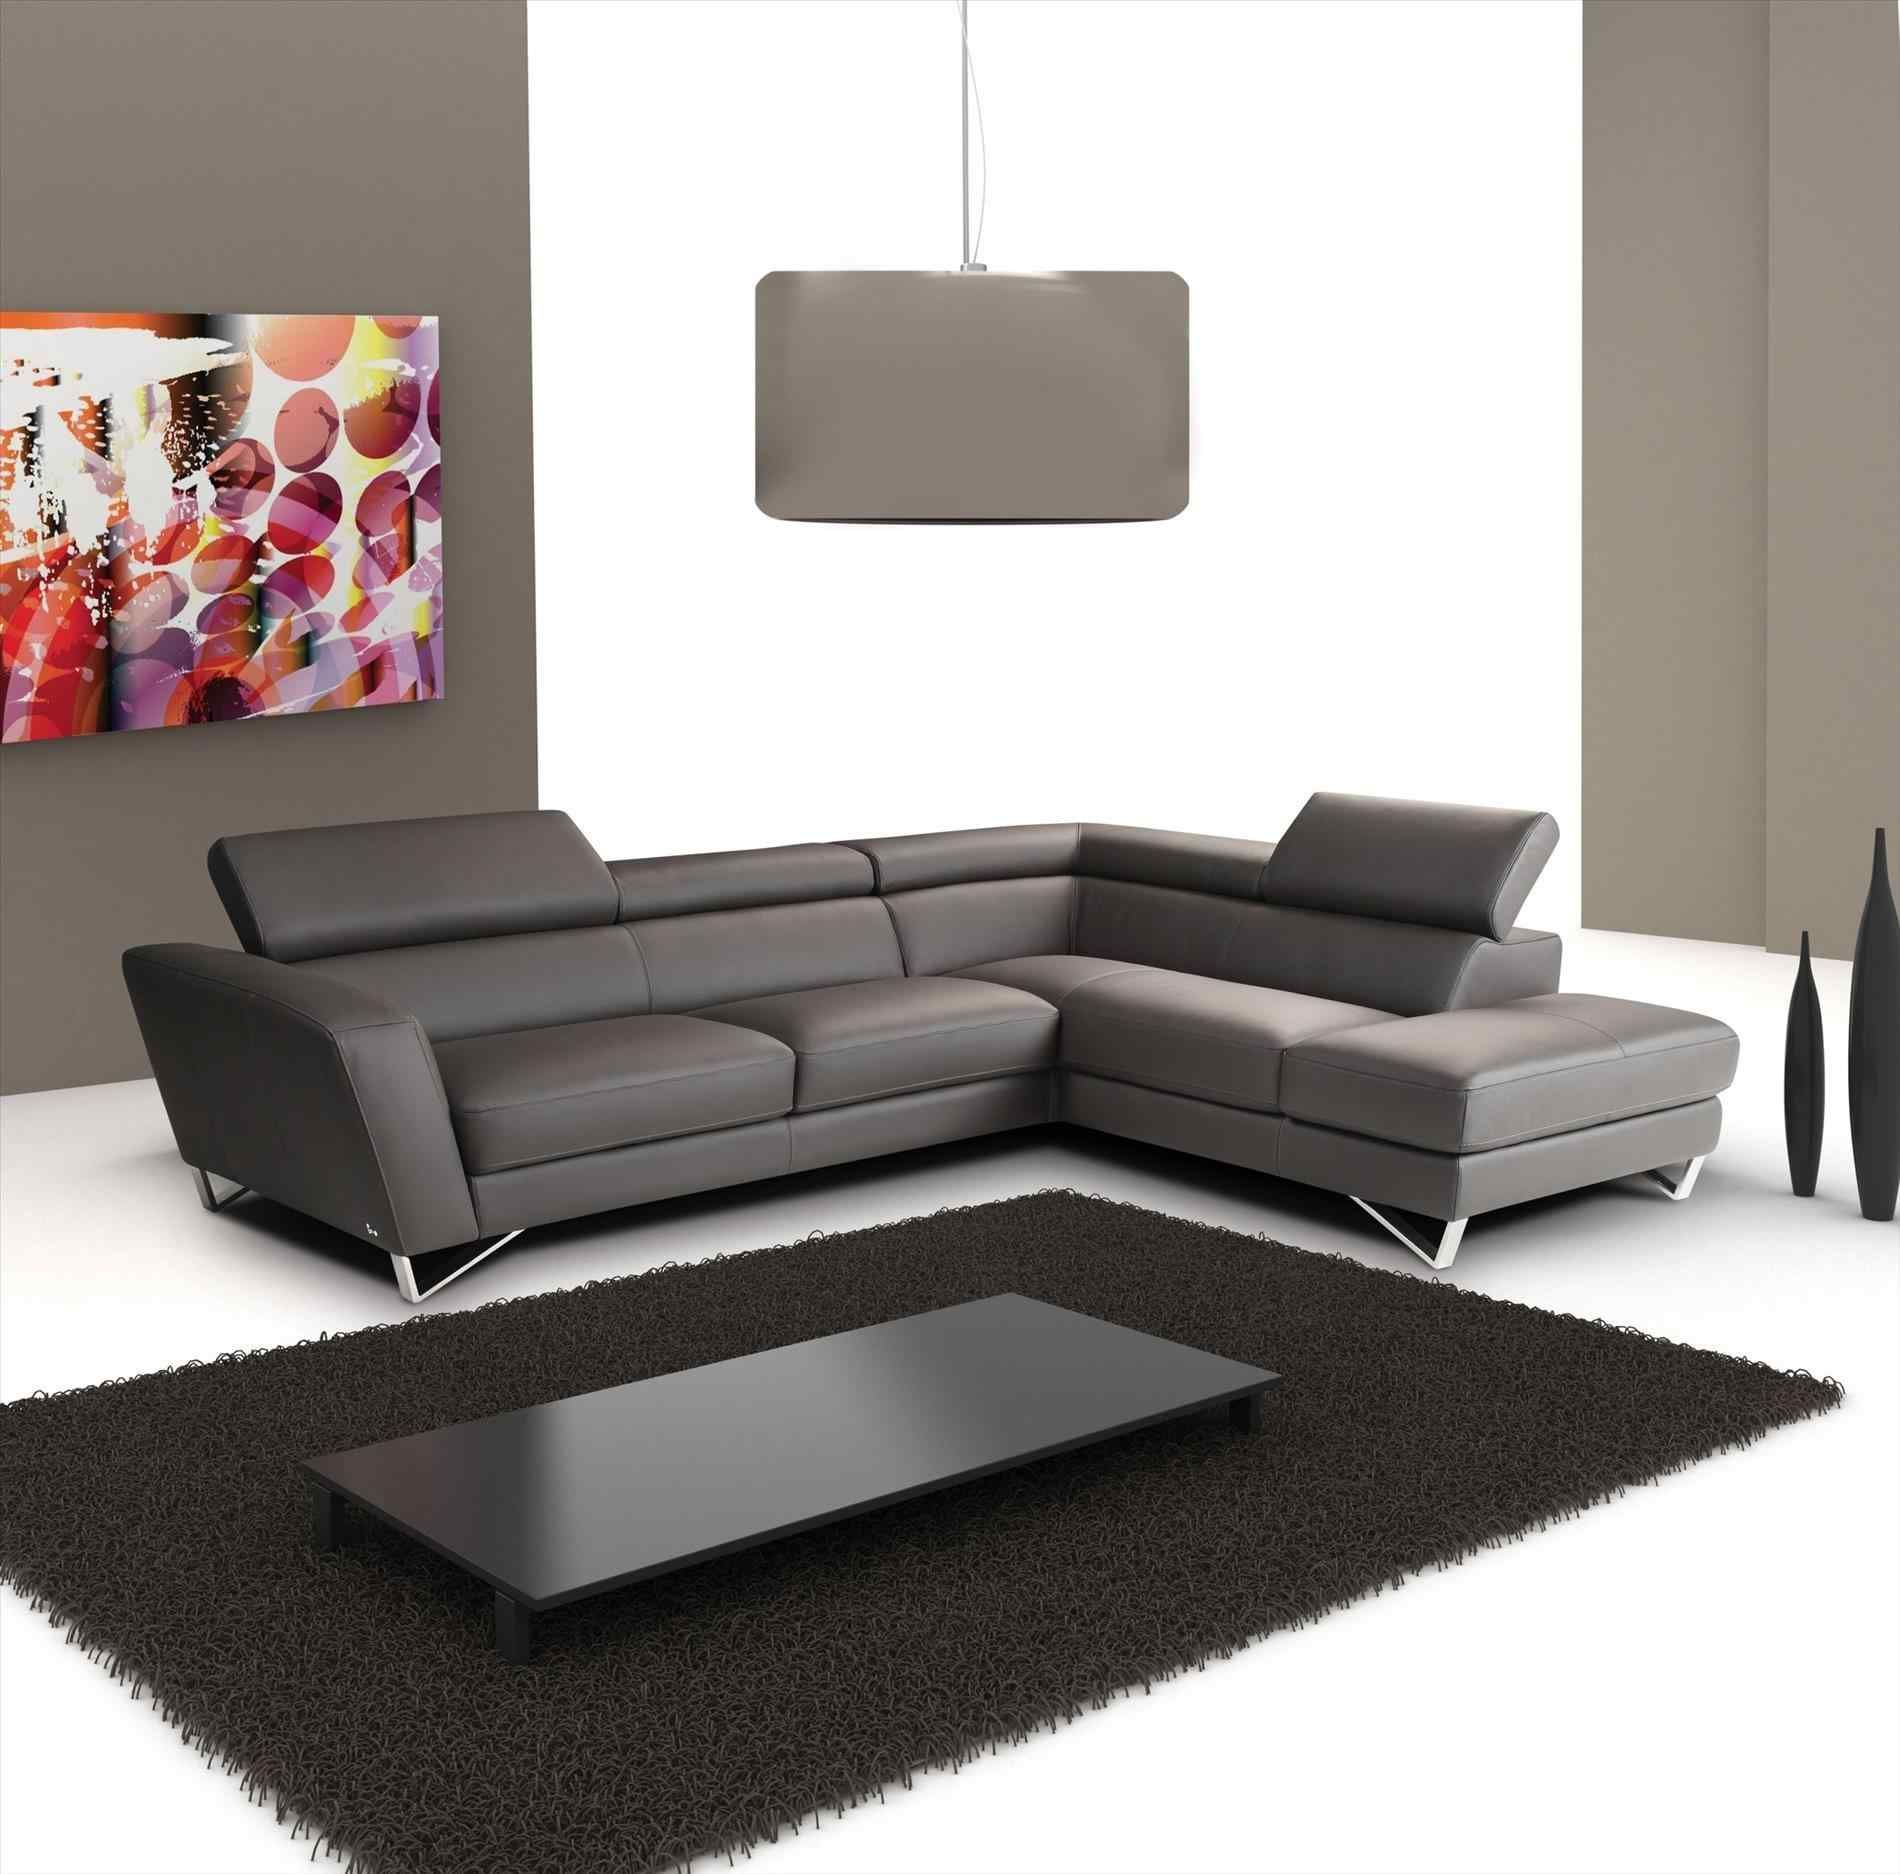 Dark Grey Couch Also Luxury Couch Schlaffunktion Neu 50 Sears Couches Low Cost Sectional Sofas Sears Cozy Gray Sofa For